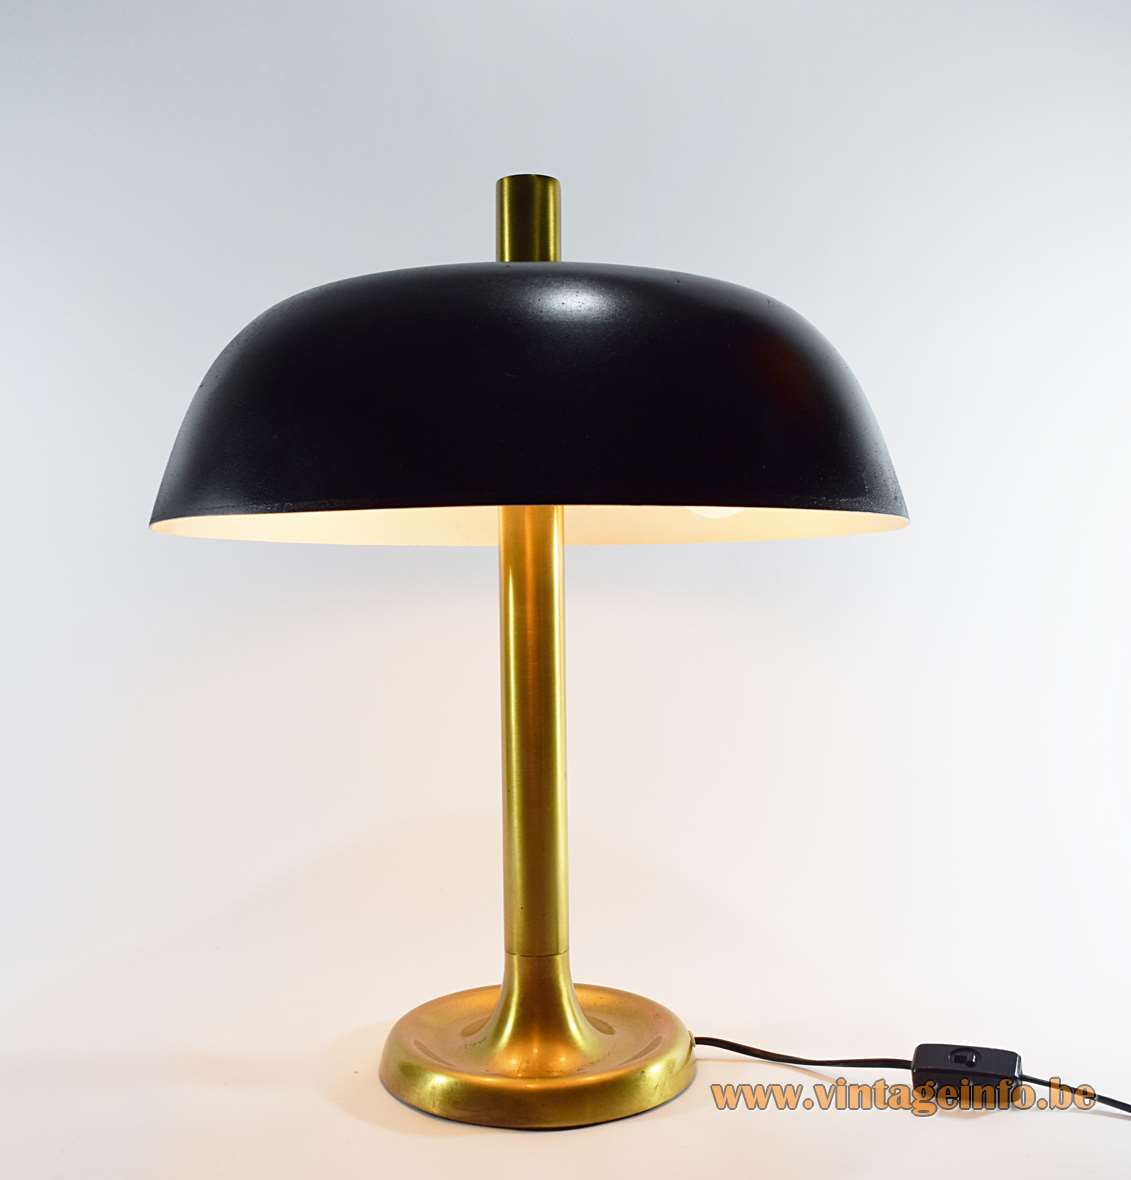 Hillebrand Table Lamp 7377